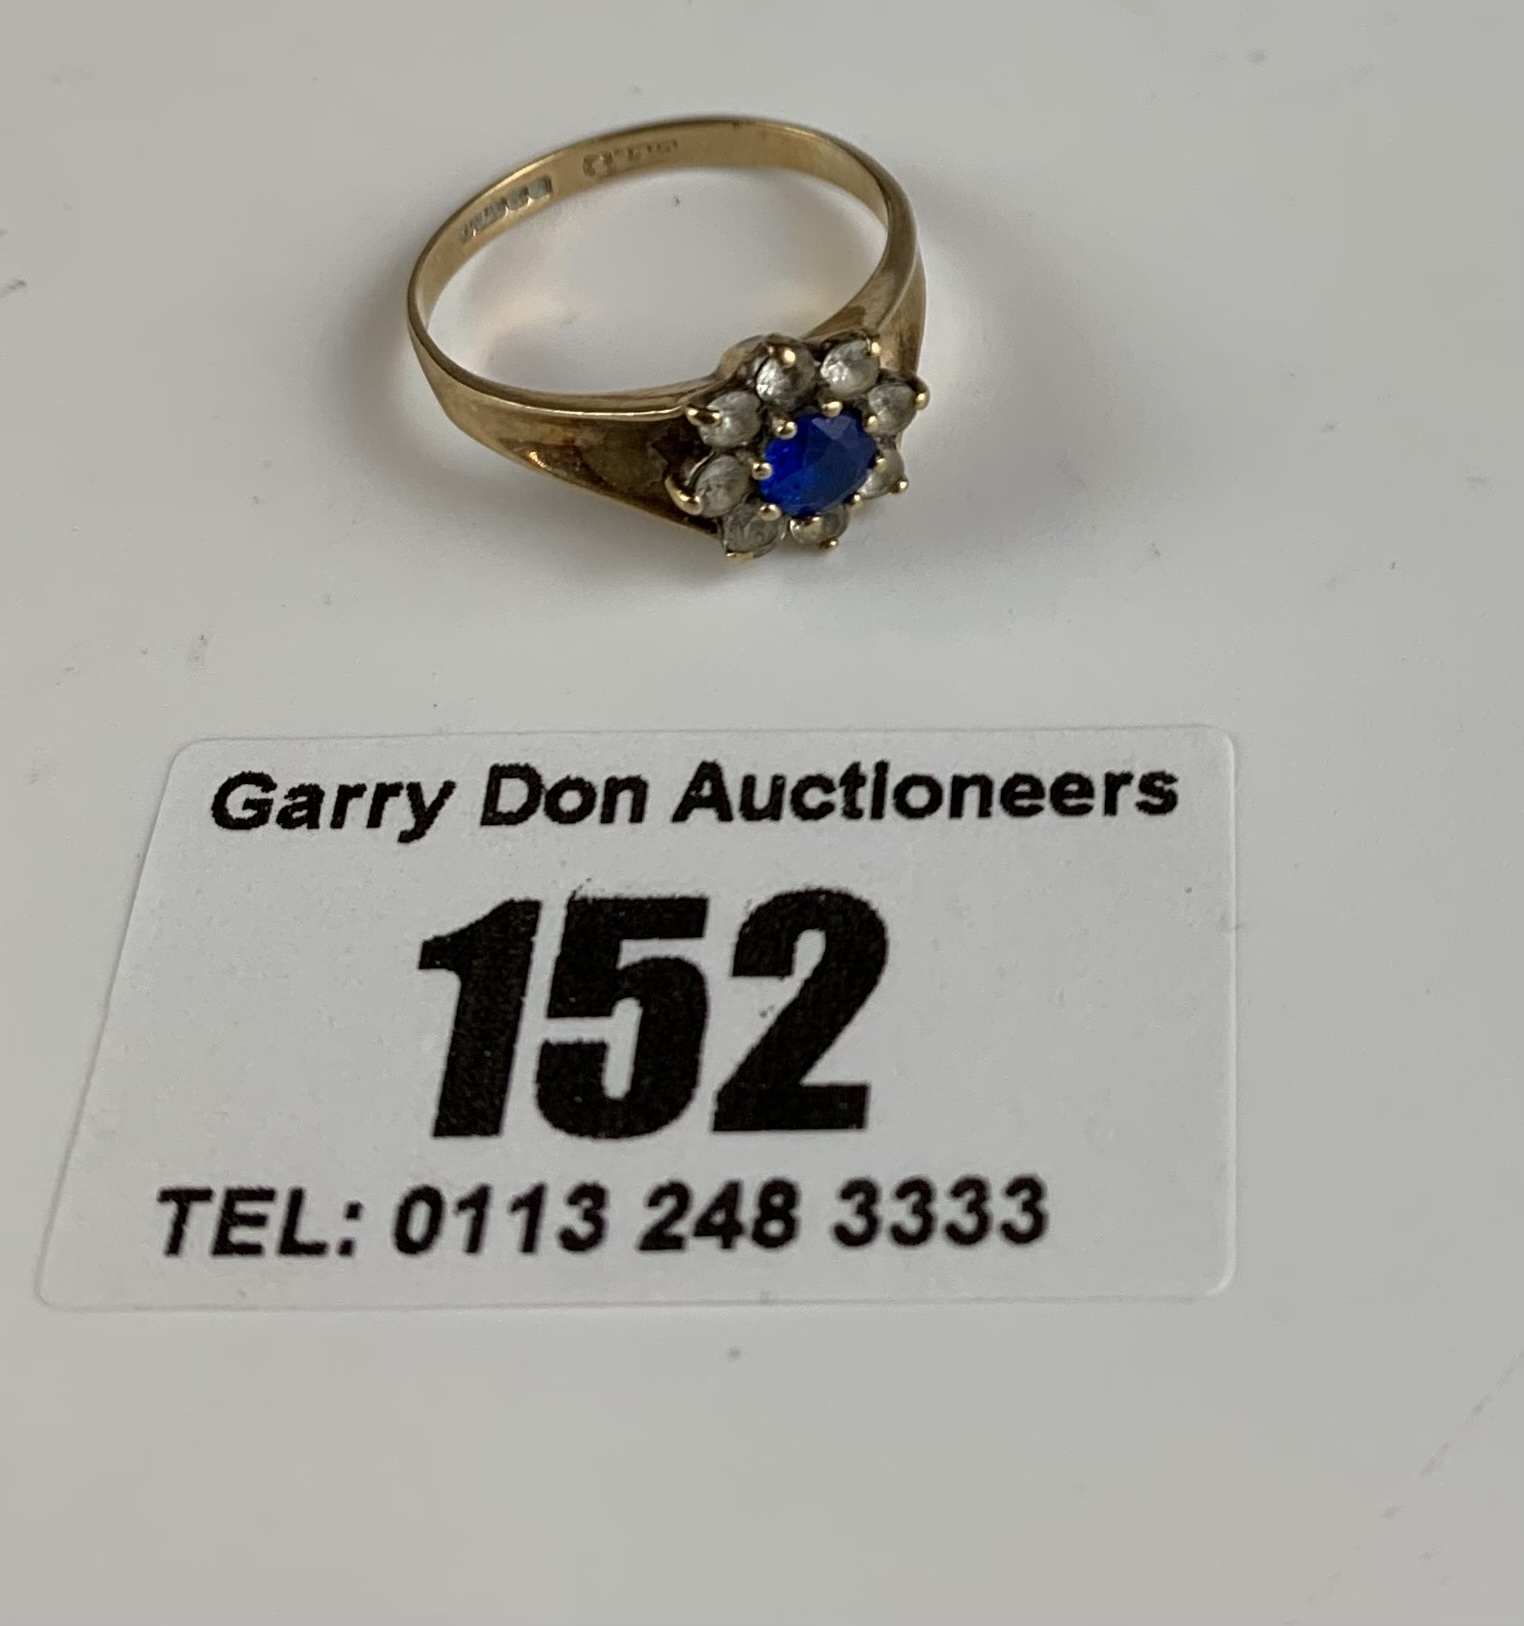 9k gold ring with blue and white stones, size K/L, w: 2 gms - Image 2 of 5